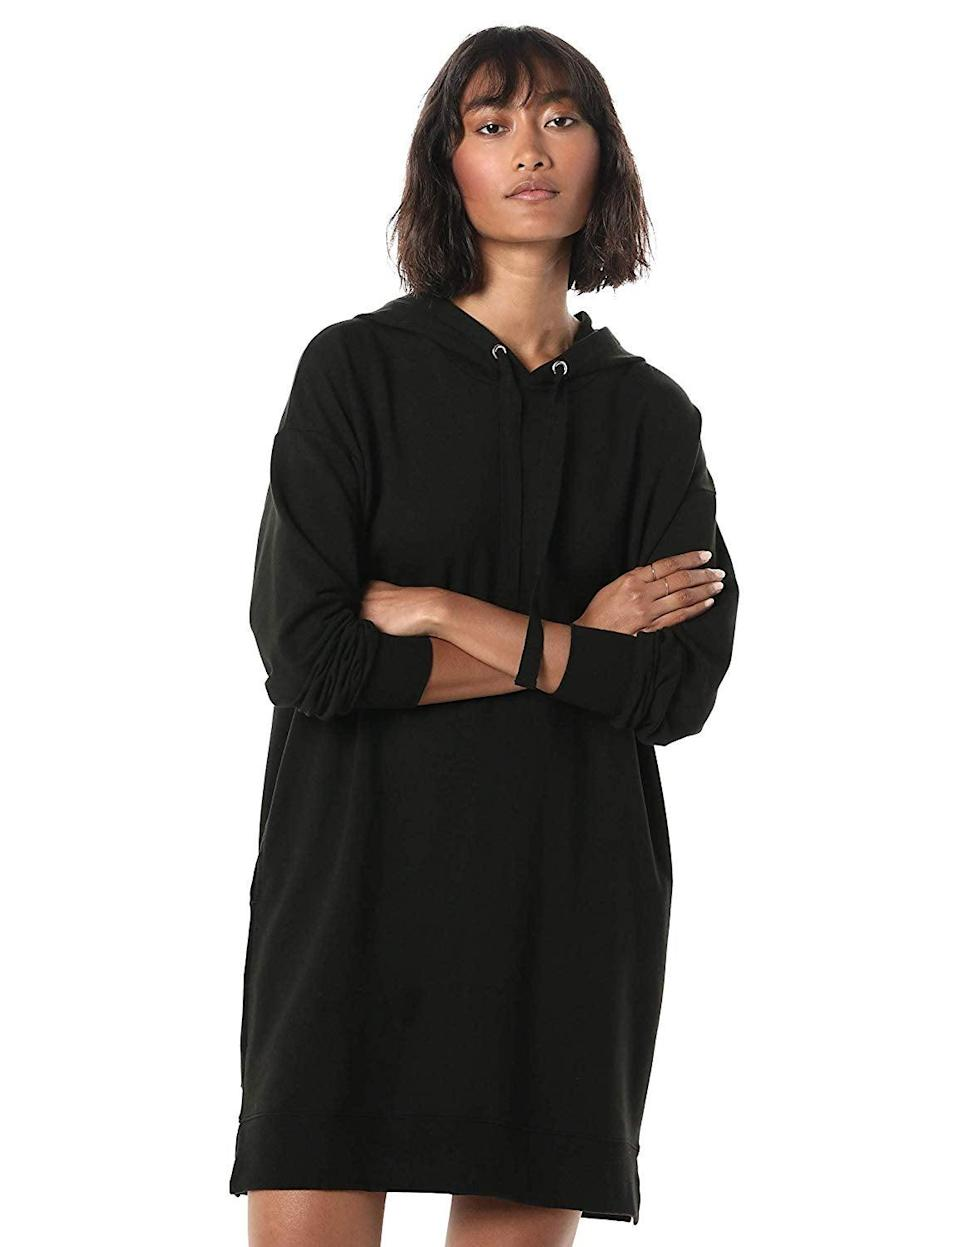 "<br><br><strong>The Drop</strong> Long Sleeve Hooded Mini Sweatshirt Dress, $, available at <a href=""https://amzn.to/2DY3nWc"" rel=""nofollow noopener"" target=""_blank"" data-ylk=""slk:Amazon"" class=""link rapid-noclick-resp"">Amazon</a>"